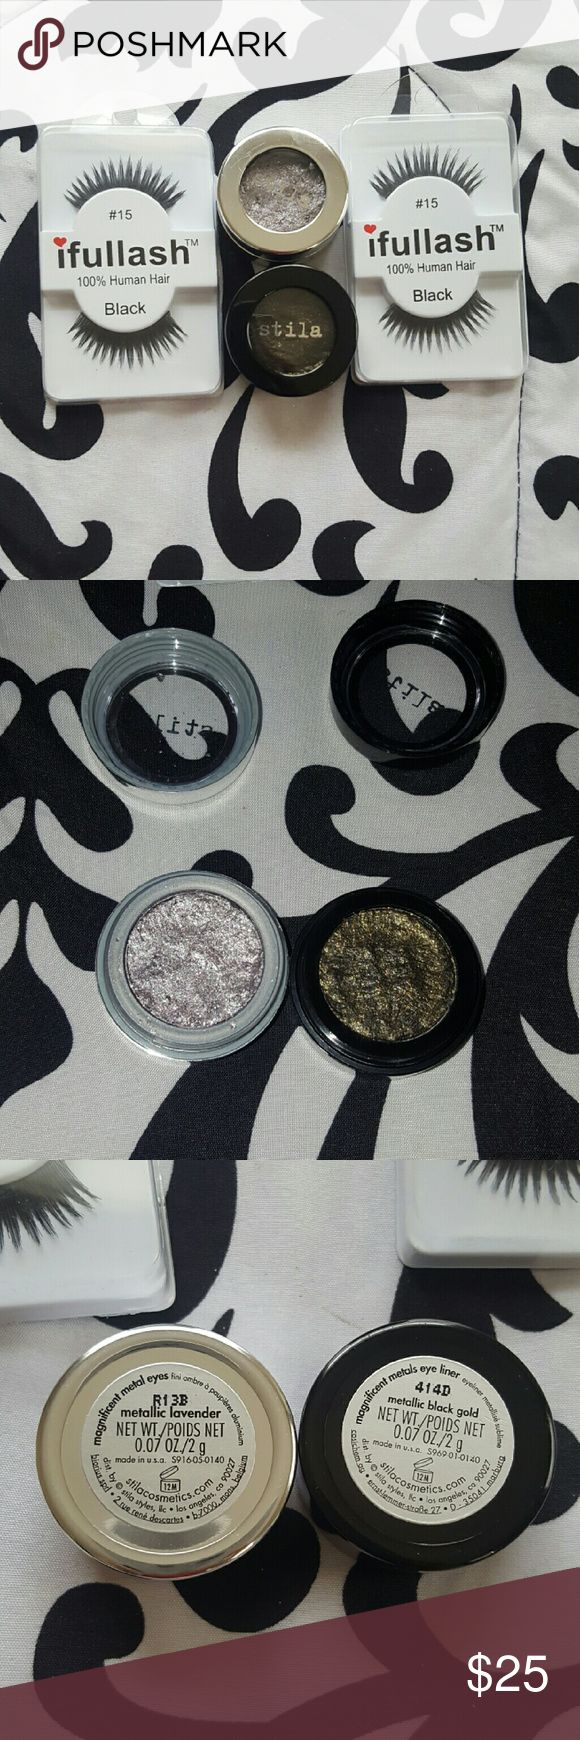 🌟Sale🌟Stila Magnificent metal bundle *Selling because I dont know how to use these lol* *Swatched only* *Also includes two pairs of lashes 100% human hair, can be used multiple times* (Great lashes for beginners, since lash band isn't so thick) *Stila Magnificent metal eyes in metallic lavender and magnificent metals eye liner in metallic black gold(based on color this could also be used when creating a smokey eye)* *Willing to trade* Stila Makeup Eyeshadow